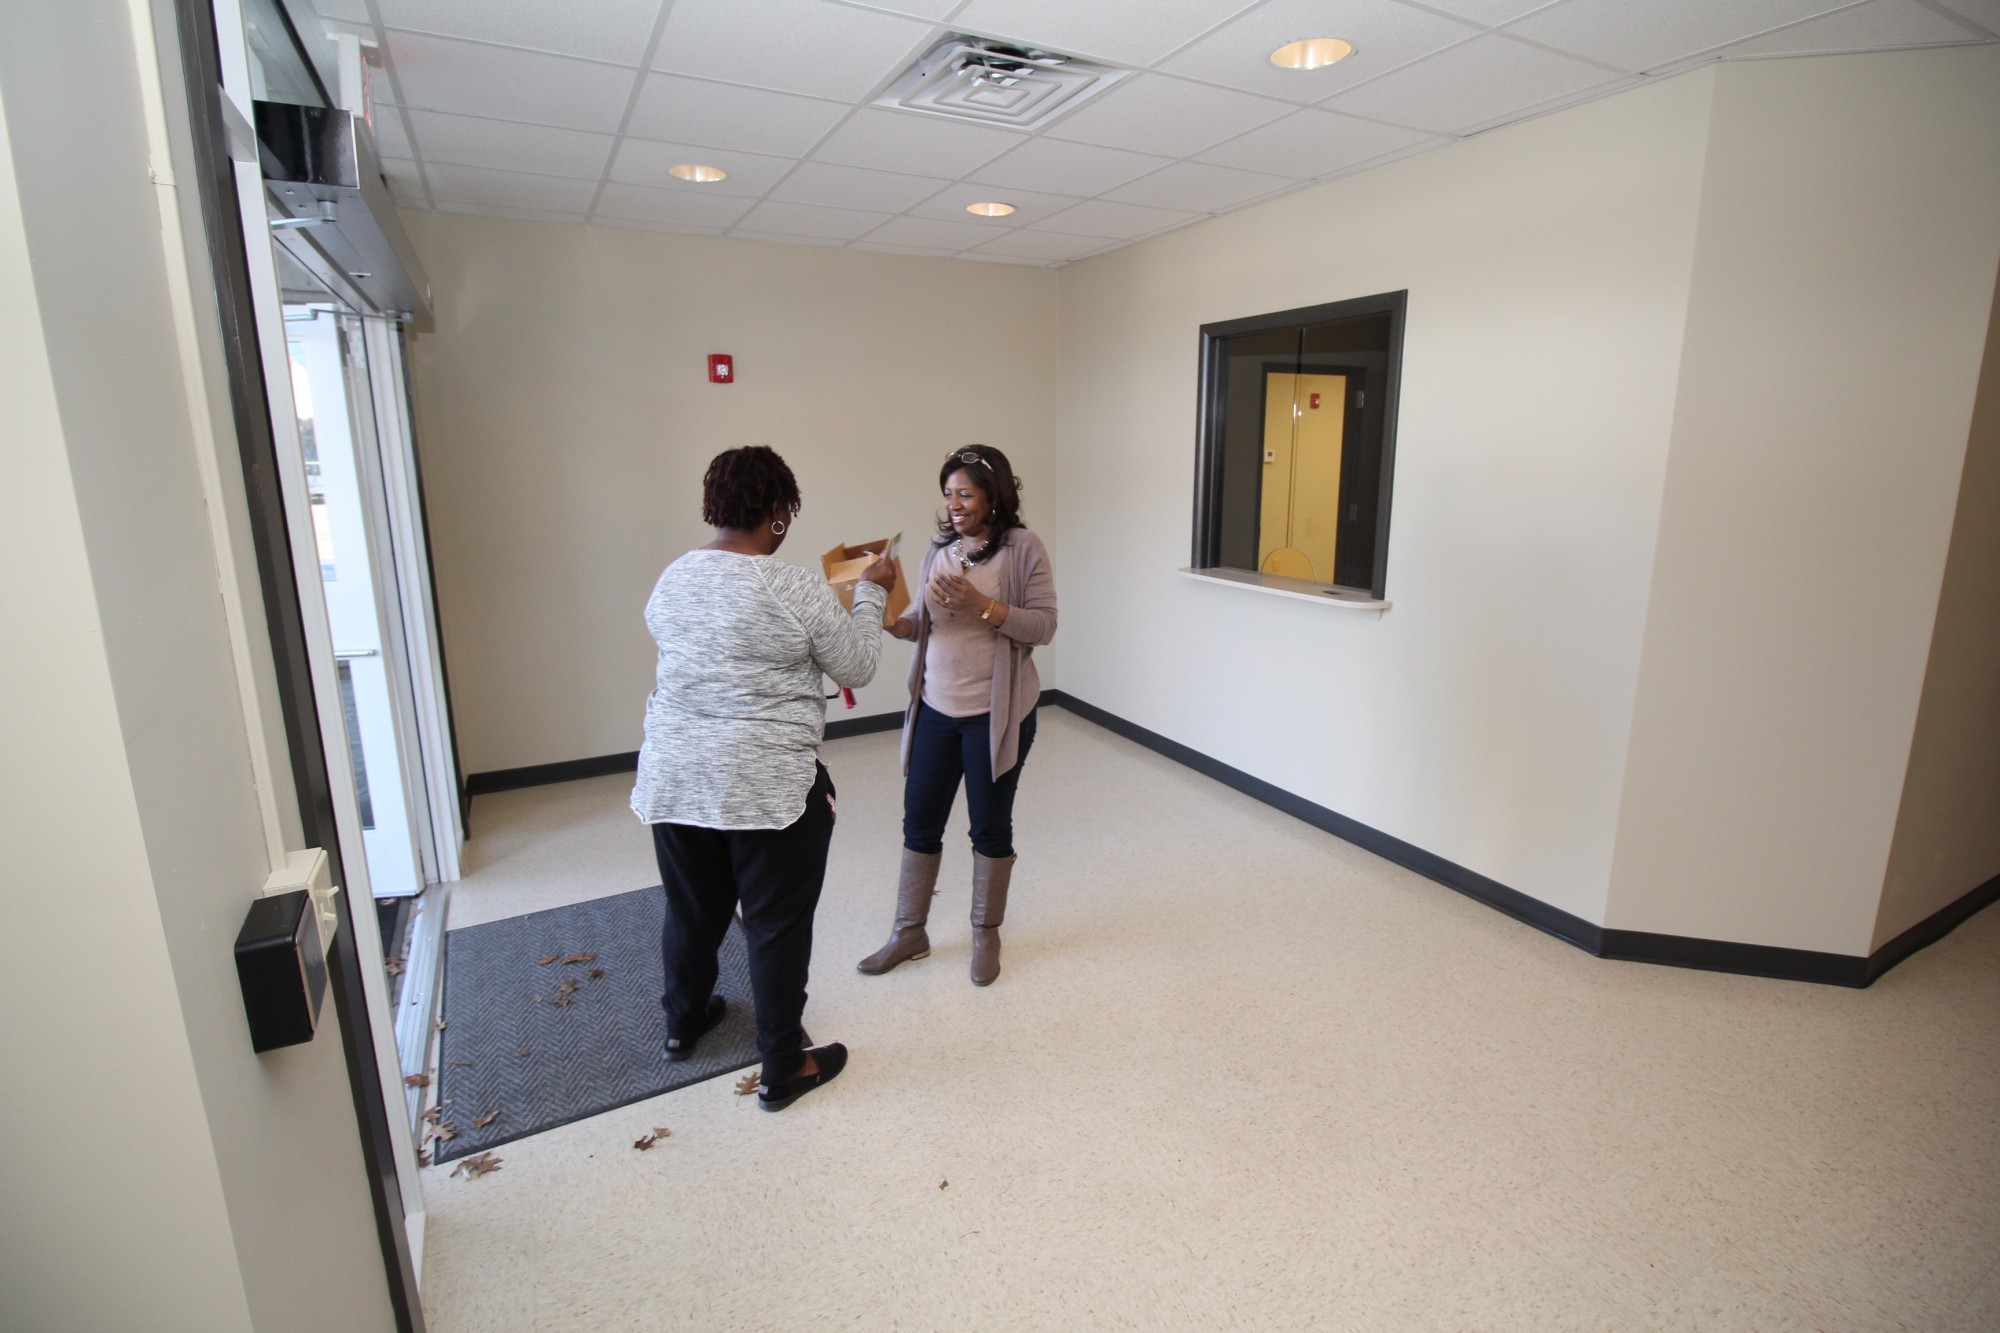 selma vrs crs office moves to new space rehab news alabama selma crs office coordinator melvina moss directs movers unloading furniture and supplies